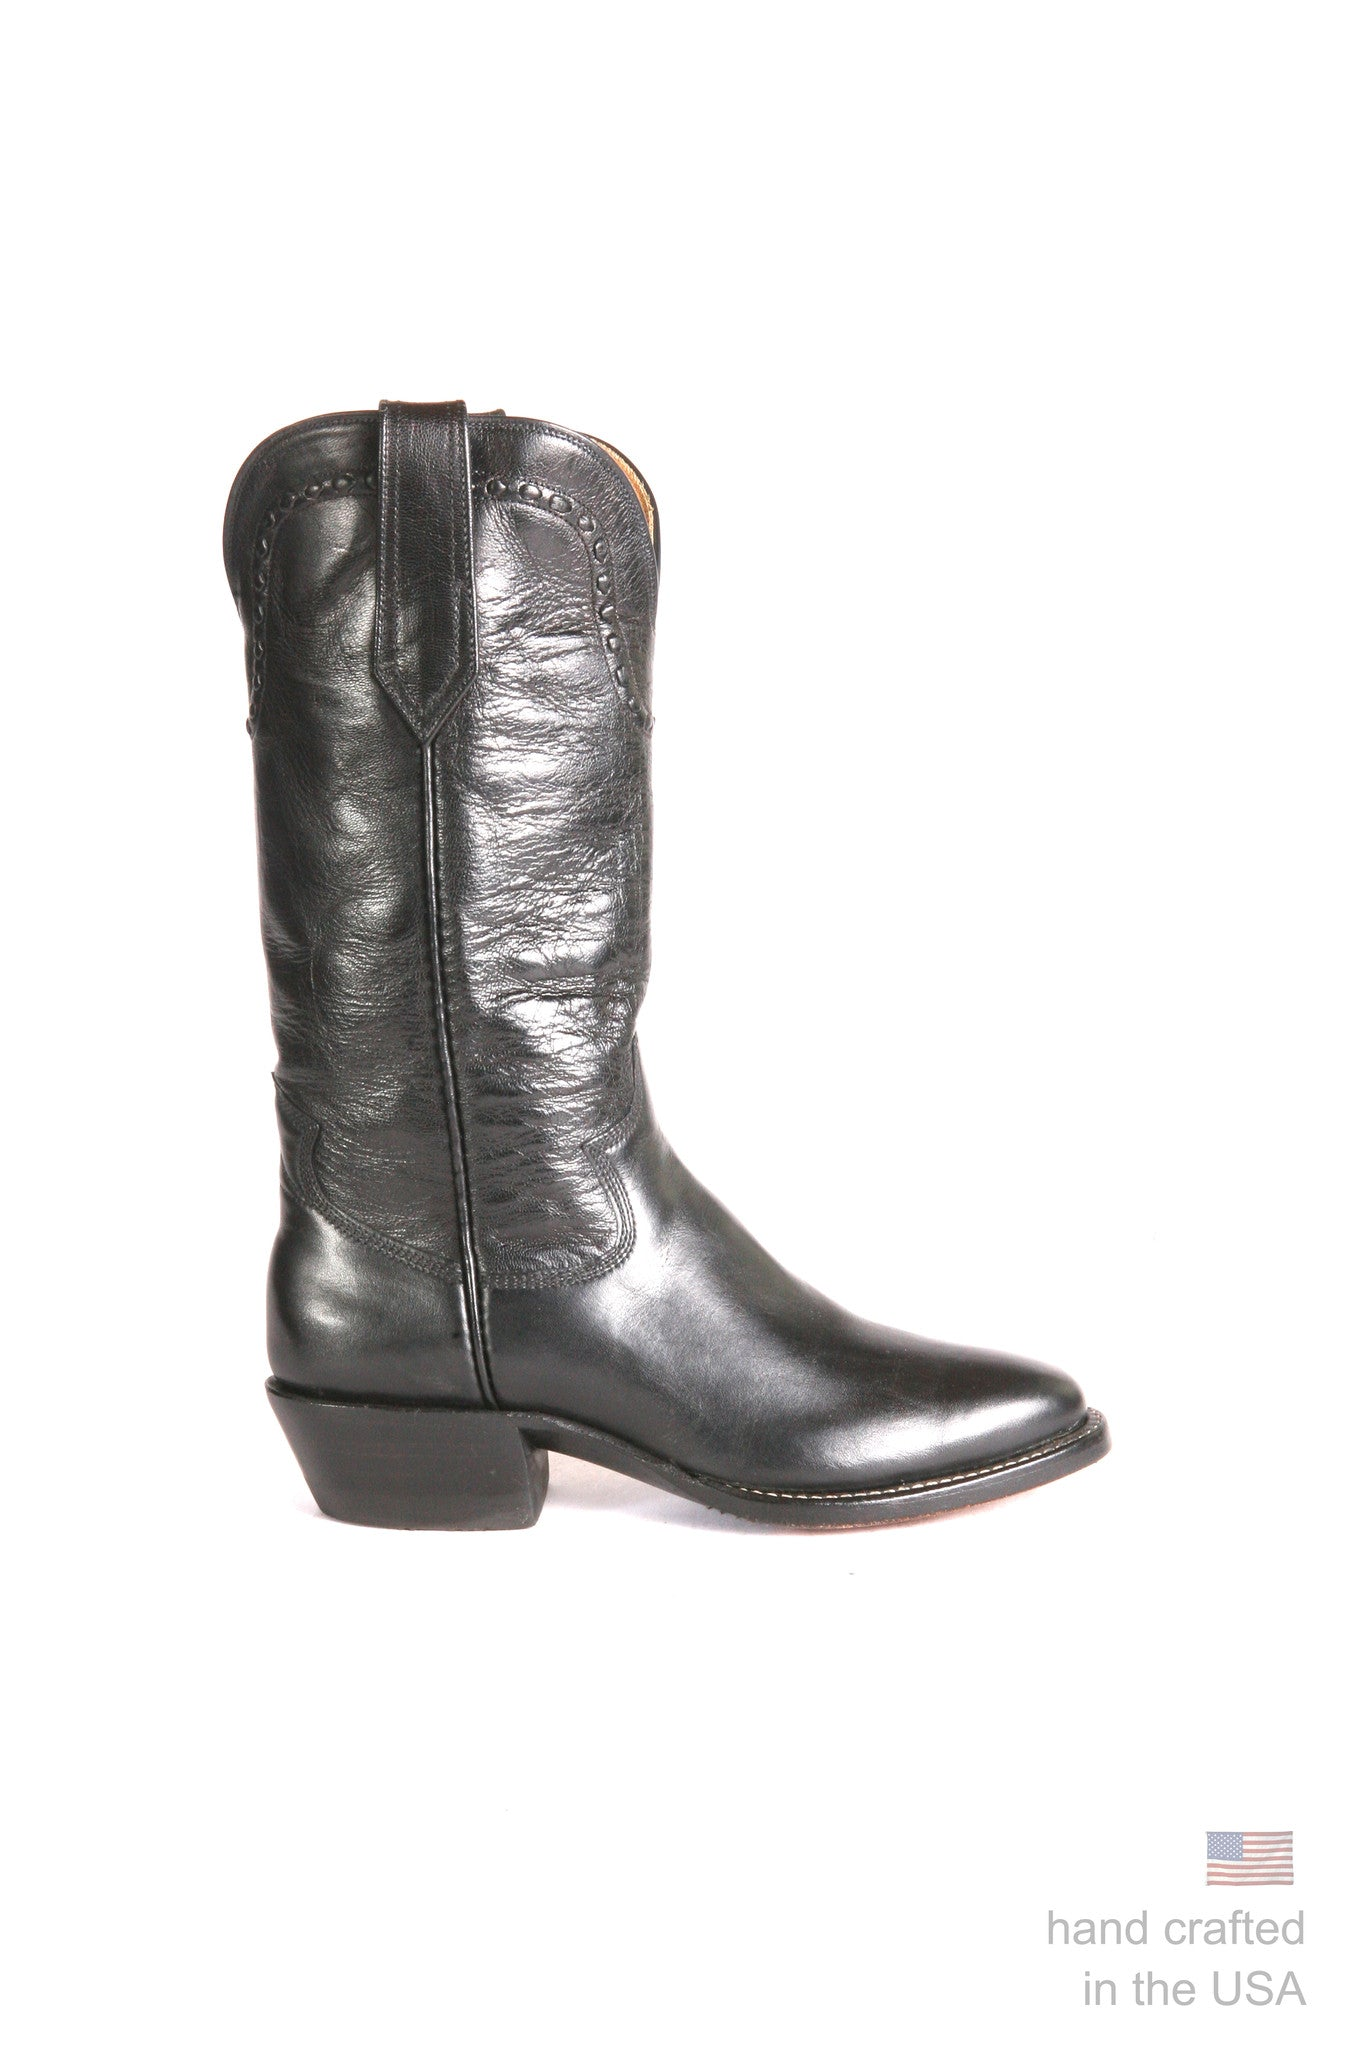 Singles: Boot 0189: Size 5.5 B